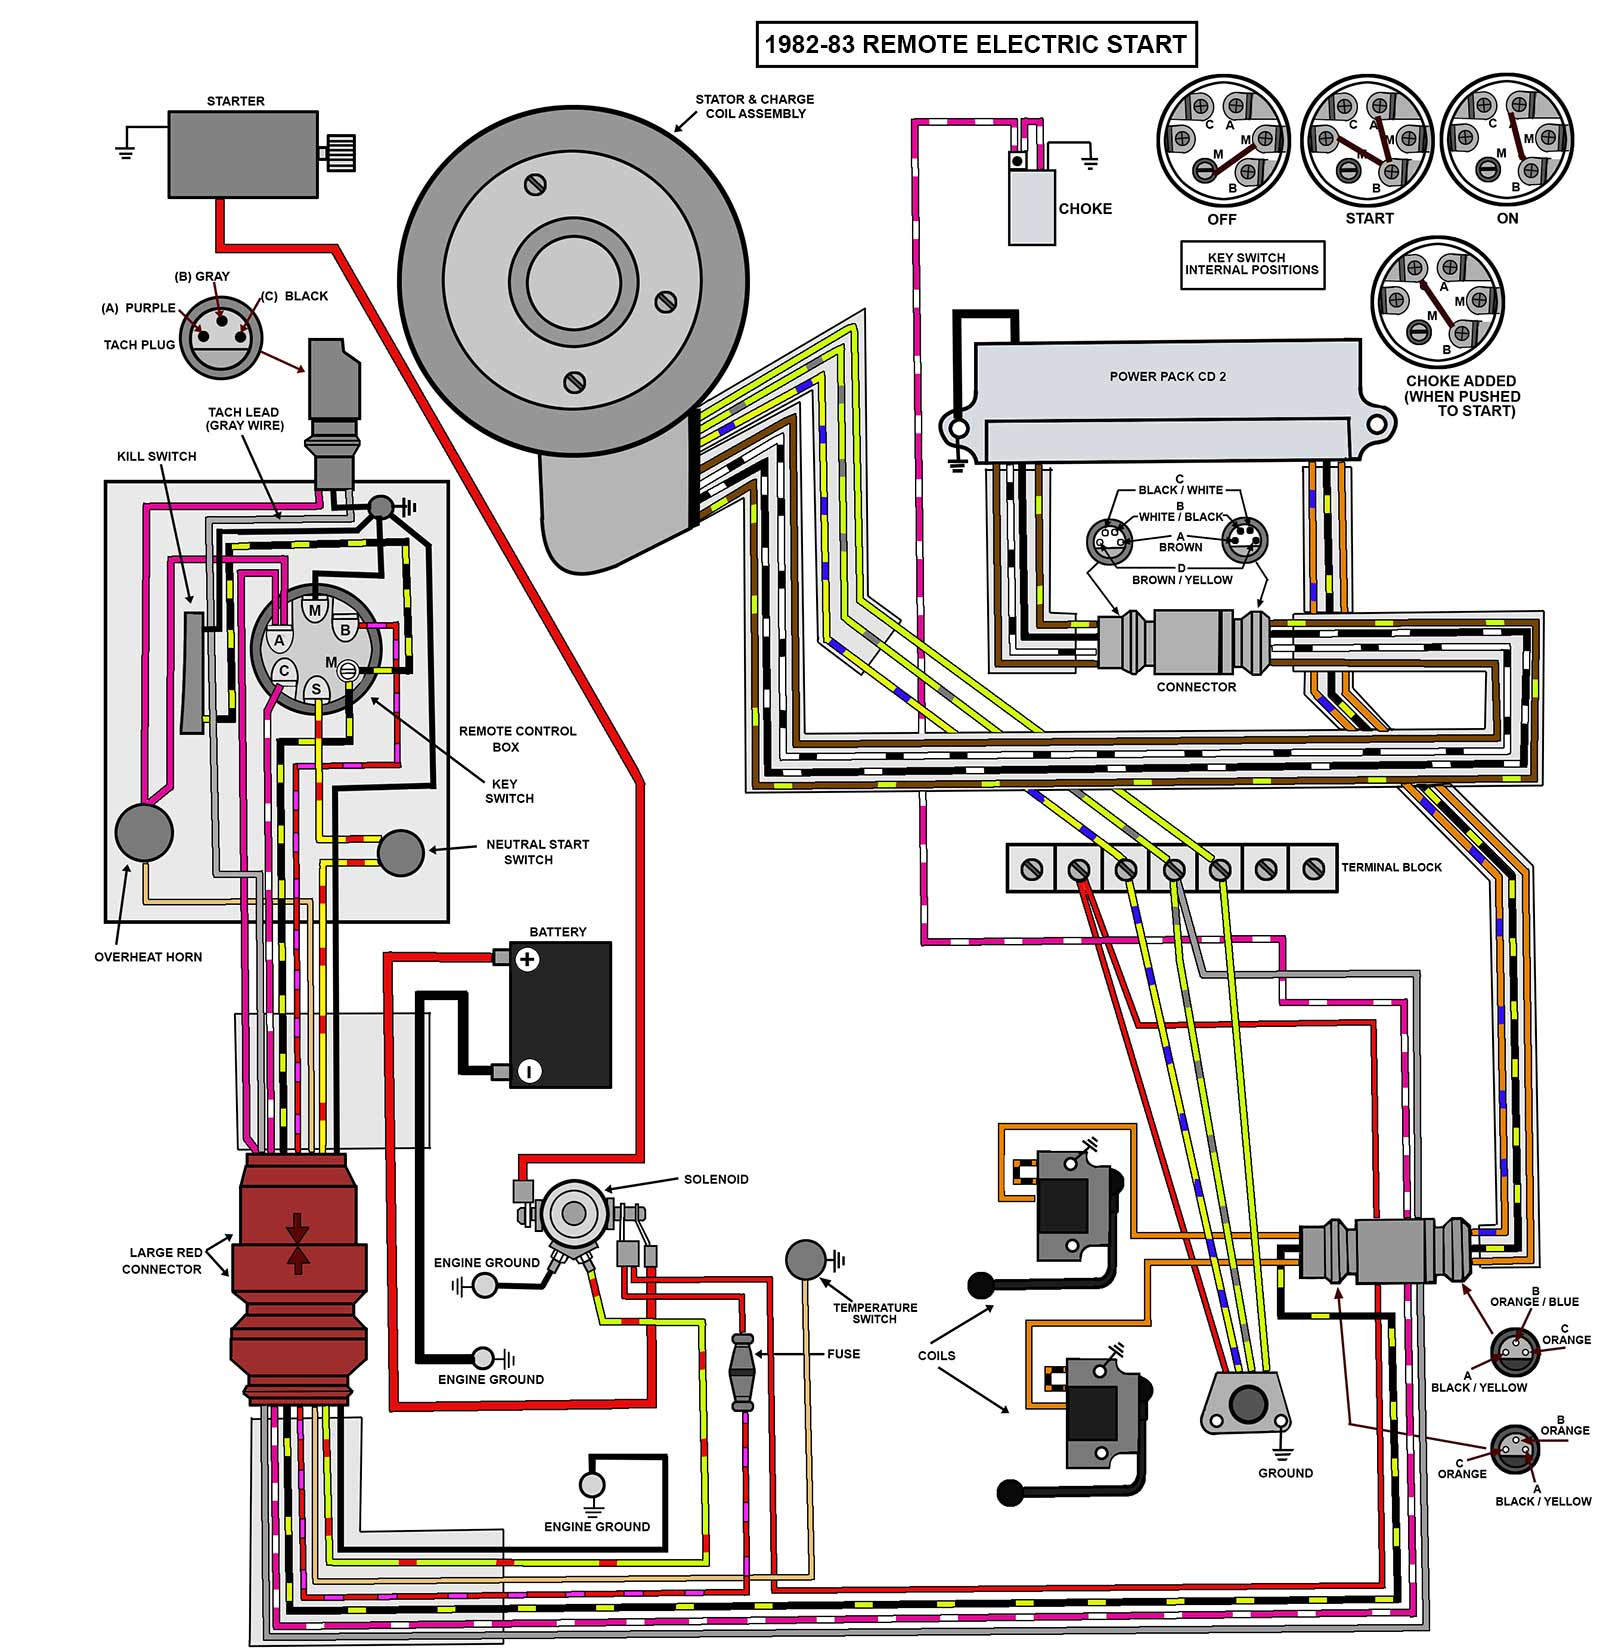 Omc Outboard Wiring Harness Diagram | Wiring Diagram on